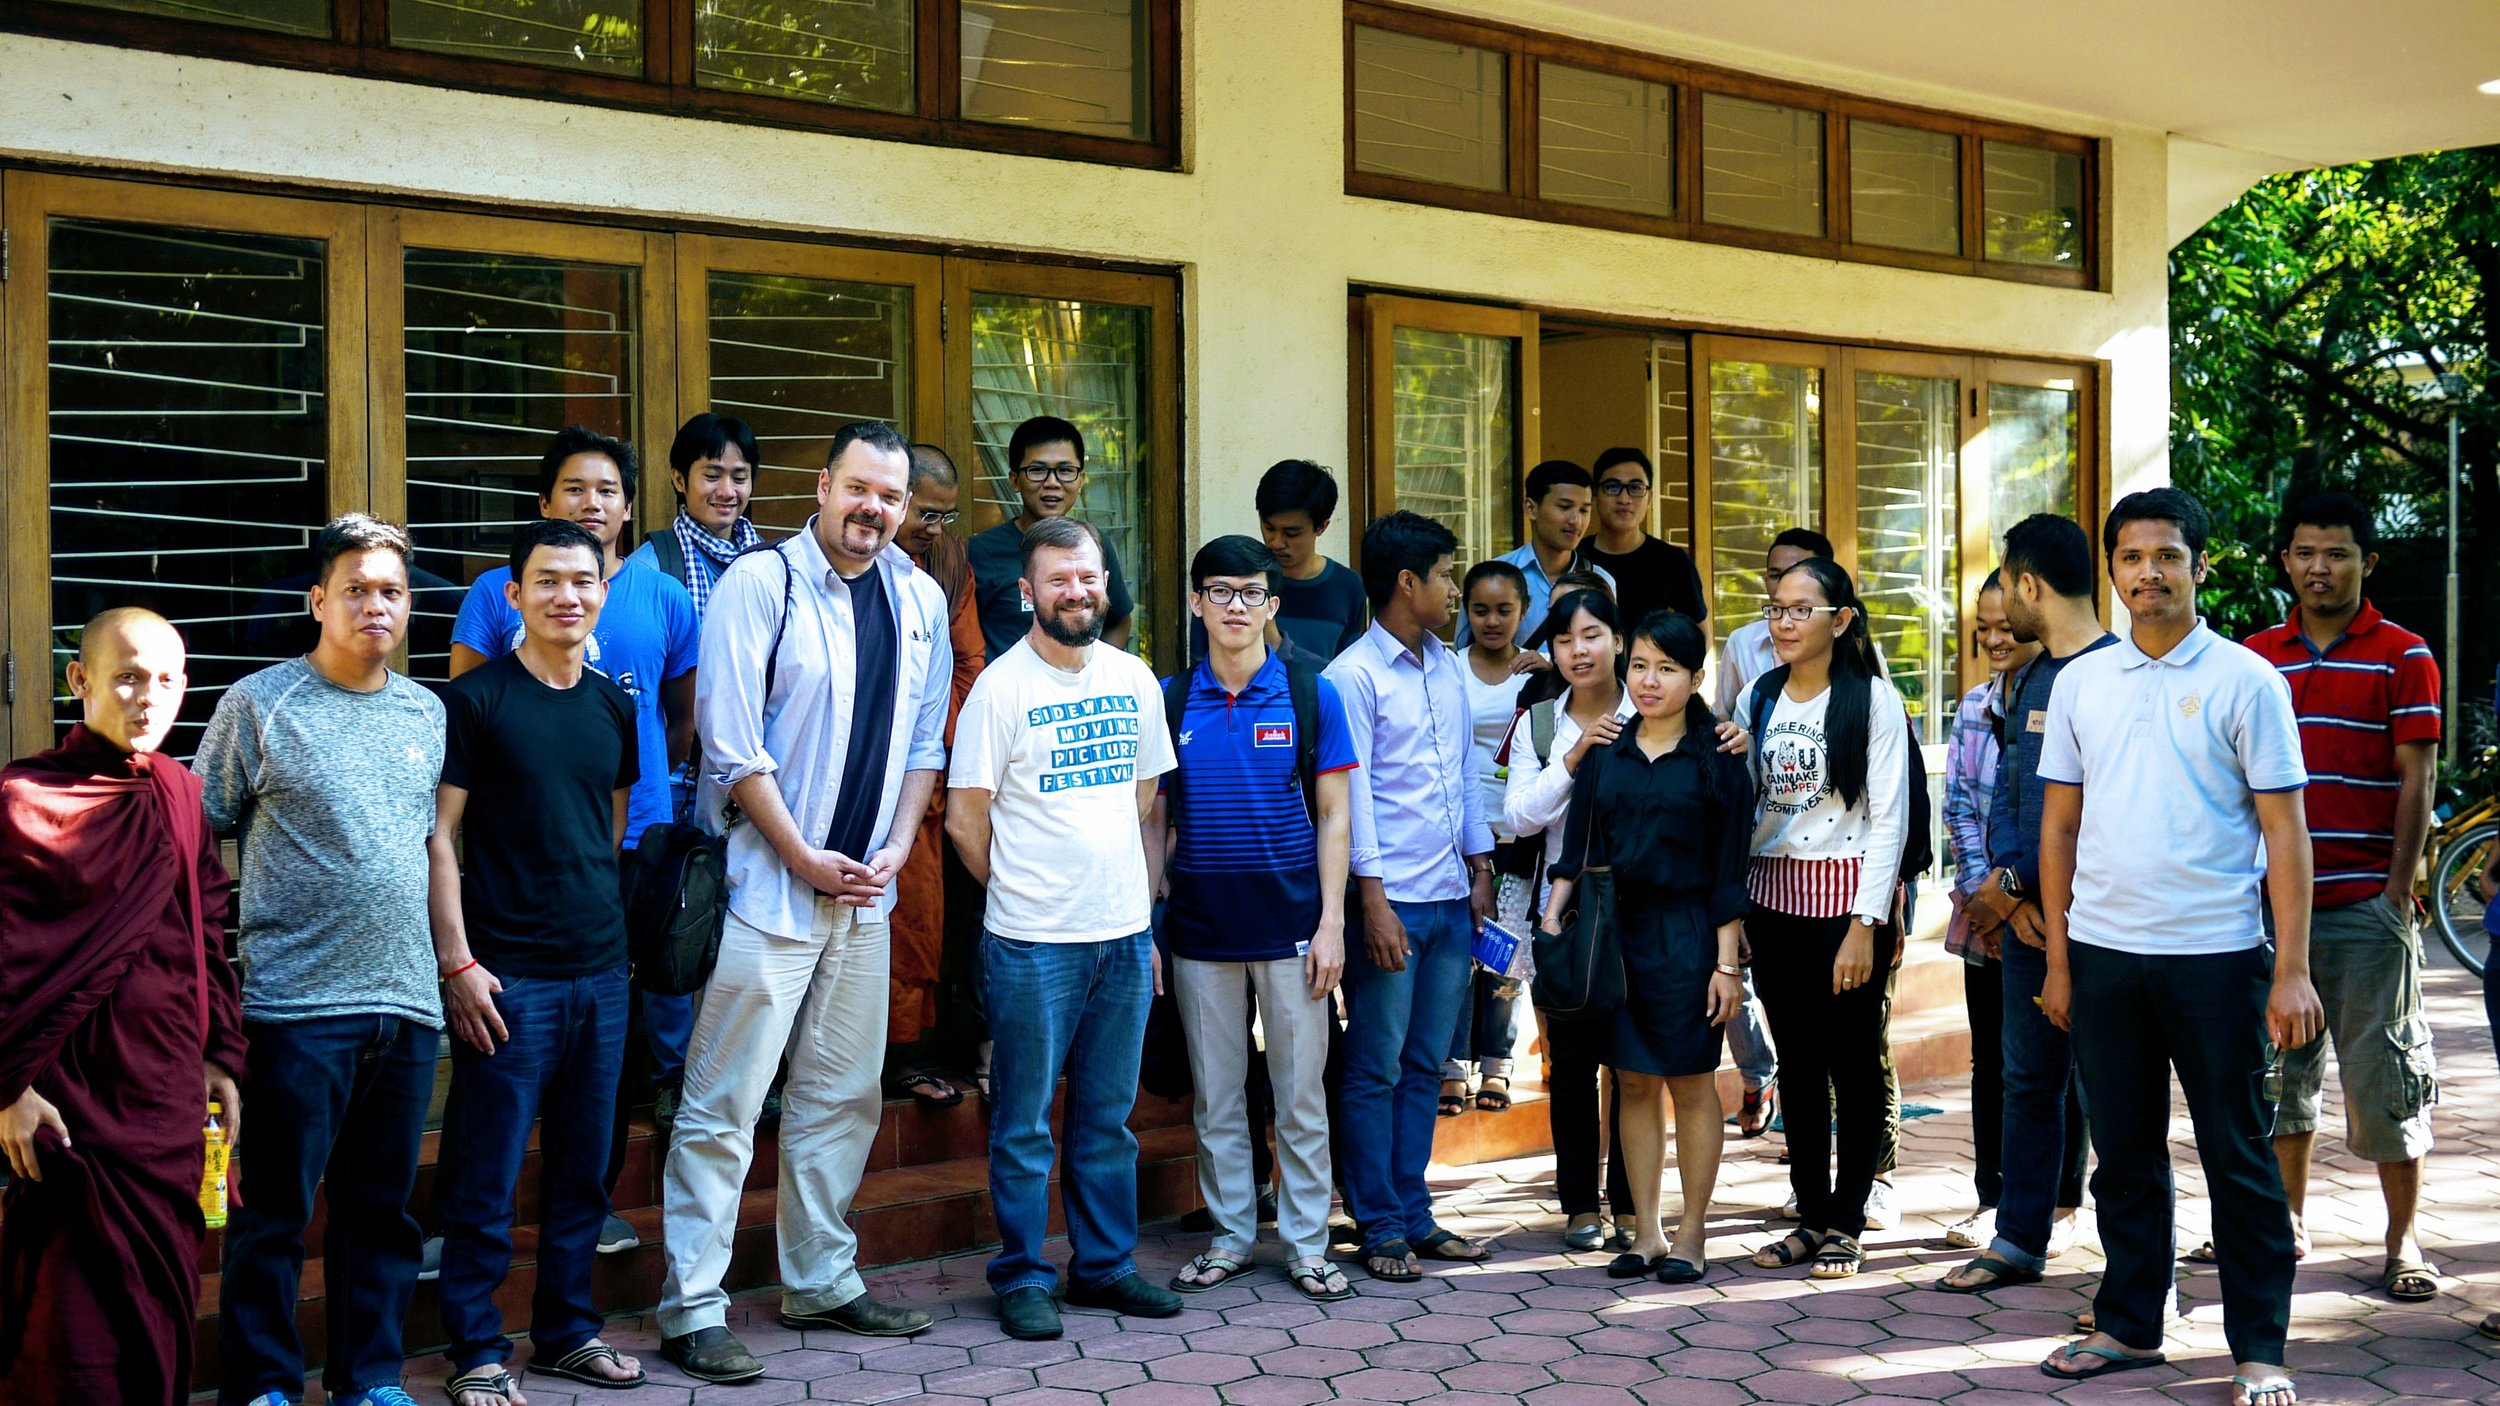 Dr Bradley J. Murg and Thomas Pearson, board members at Greater Mekong Research Center, with the Politikoffee group.